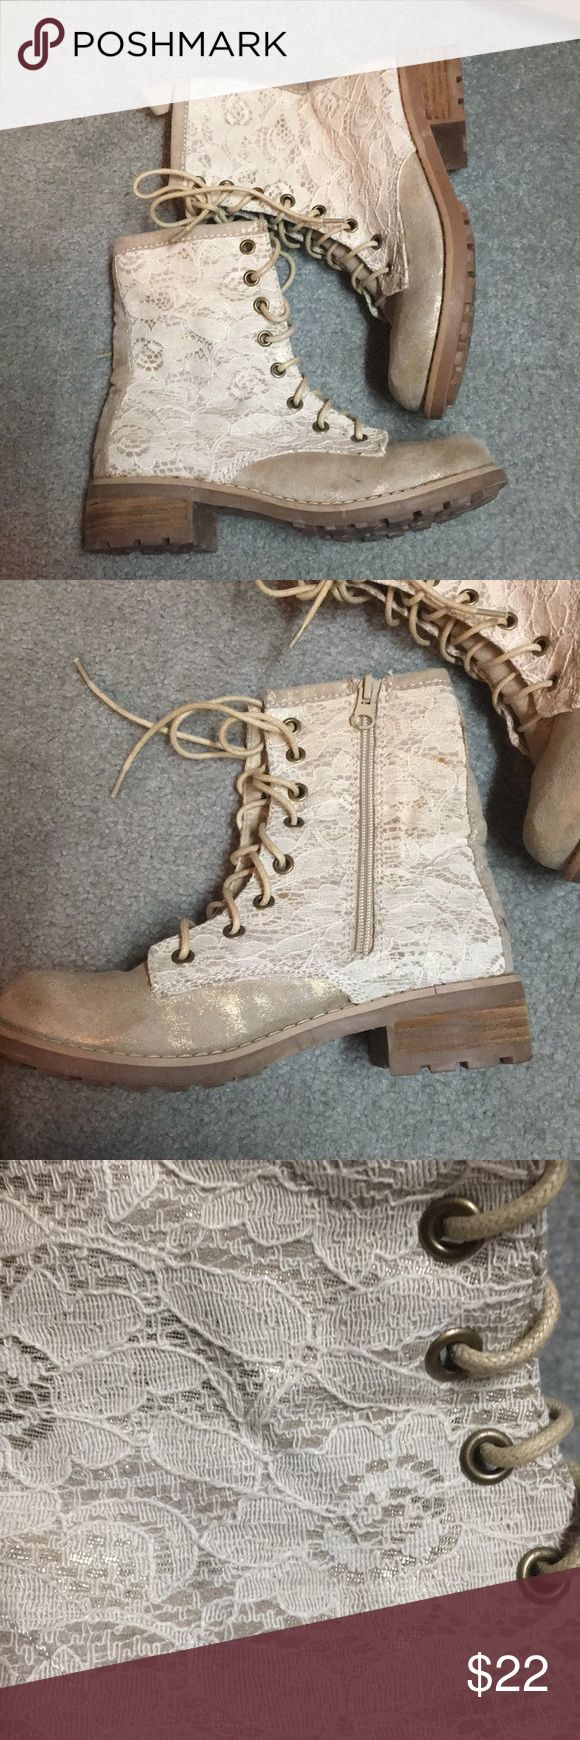 Tan/Gold Combat Boots •Size Six, Lace Combat Boots •Zippers on side, lace up in front  •Shimmery and Lace  •Unique and Stylish! •Barely Worn, in superb Condition, just like New! •Dress Up or dress down! •Feel Free to ask questions and/or Make offers! Shoes Combat & Moto Boots